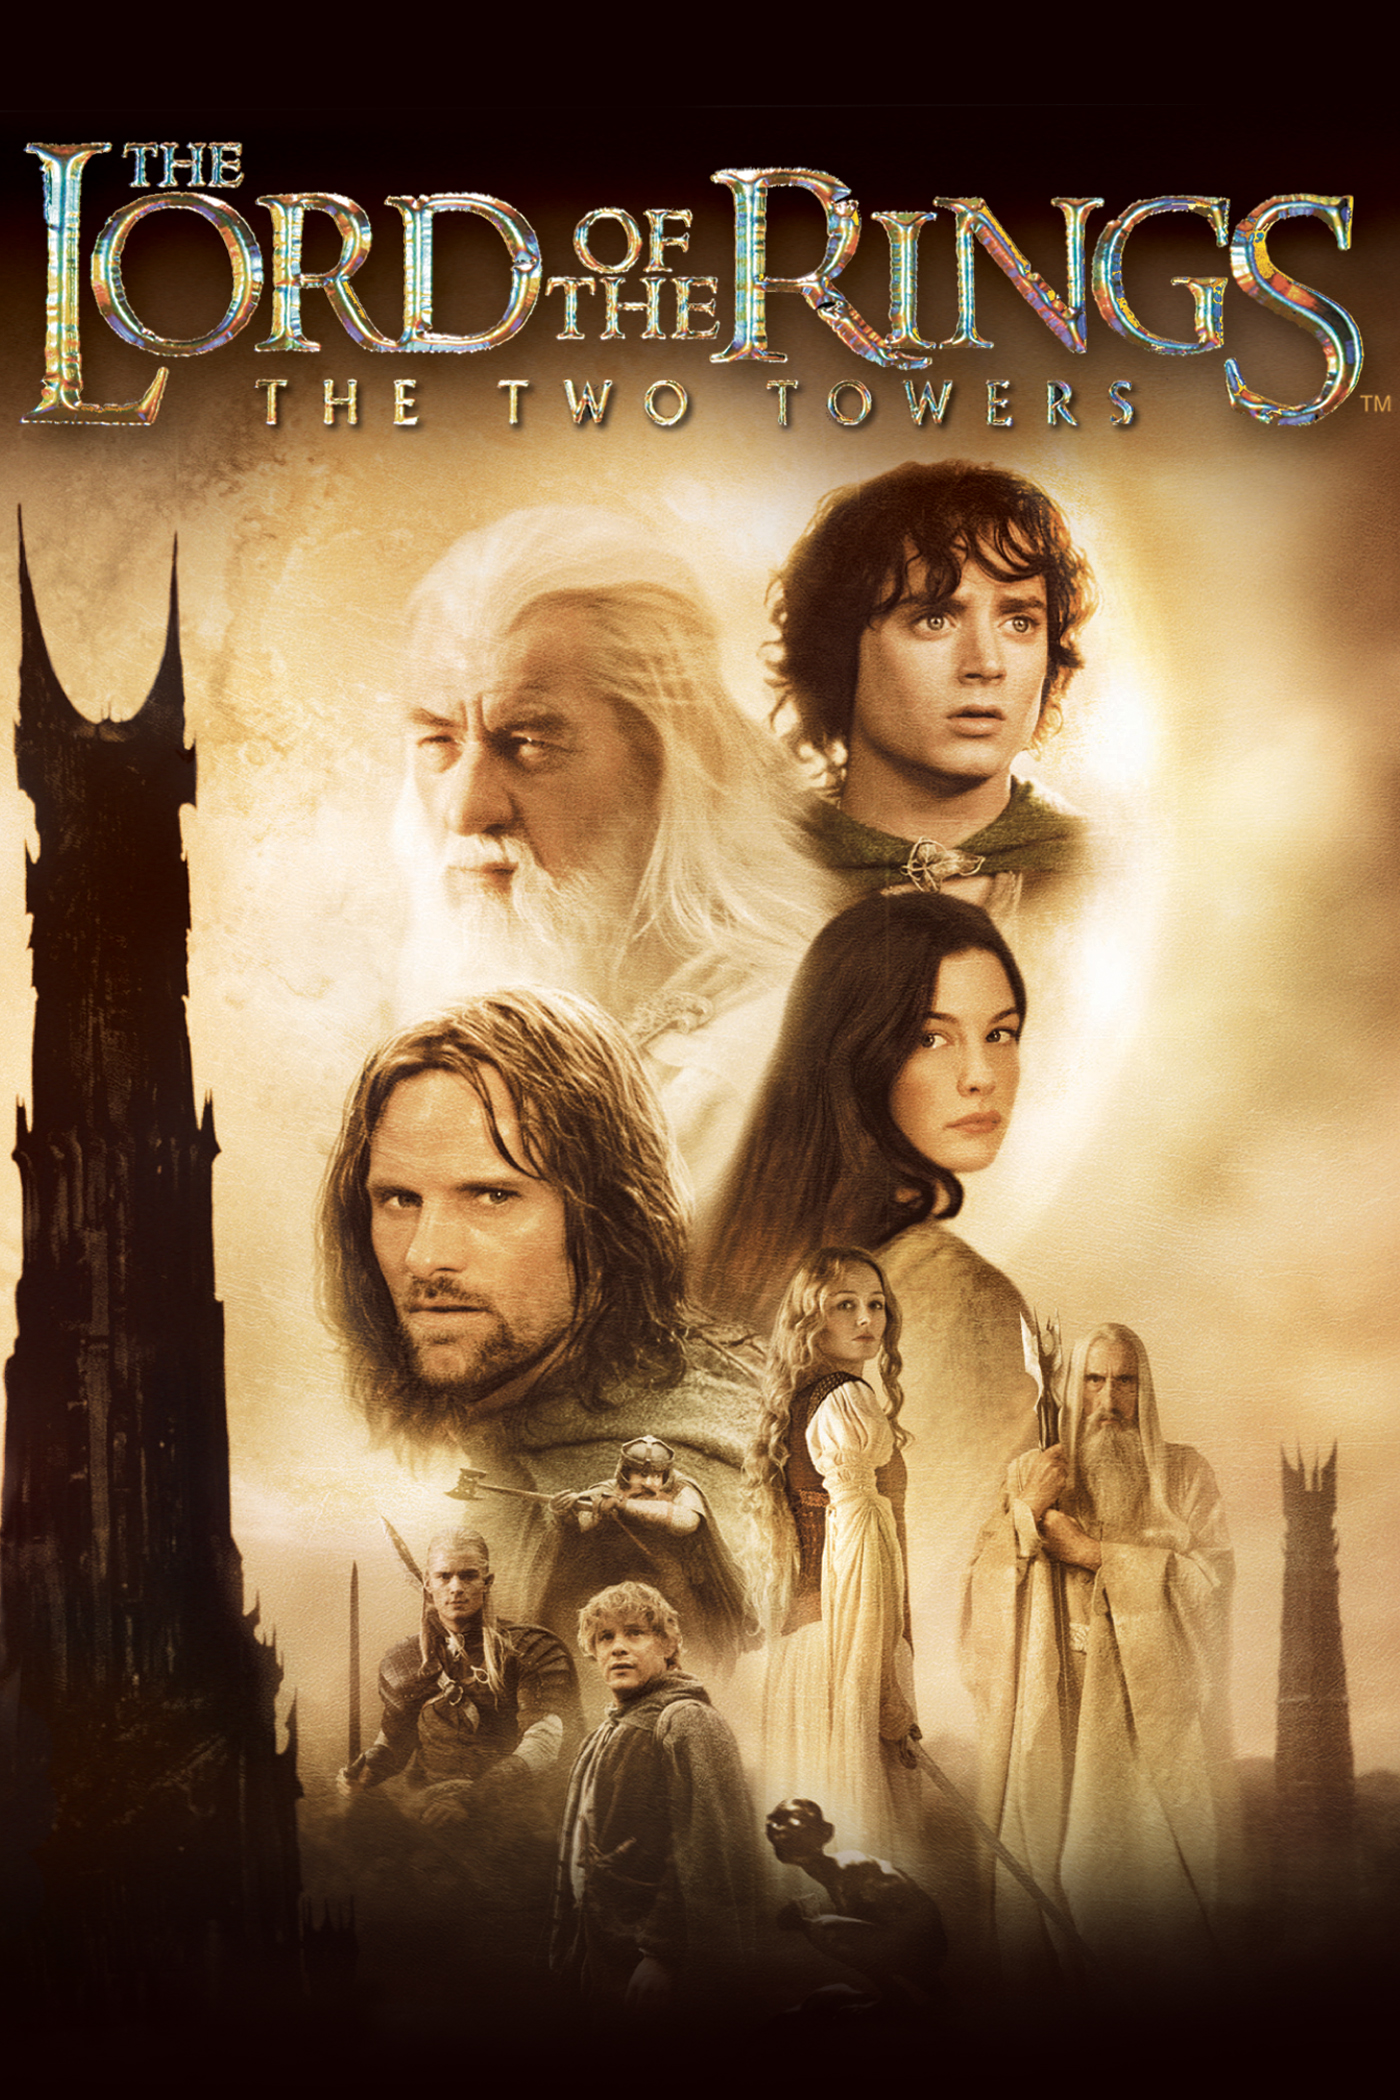 lord of the rings extended edition watch online hd